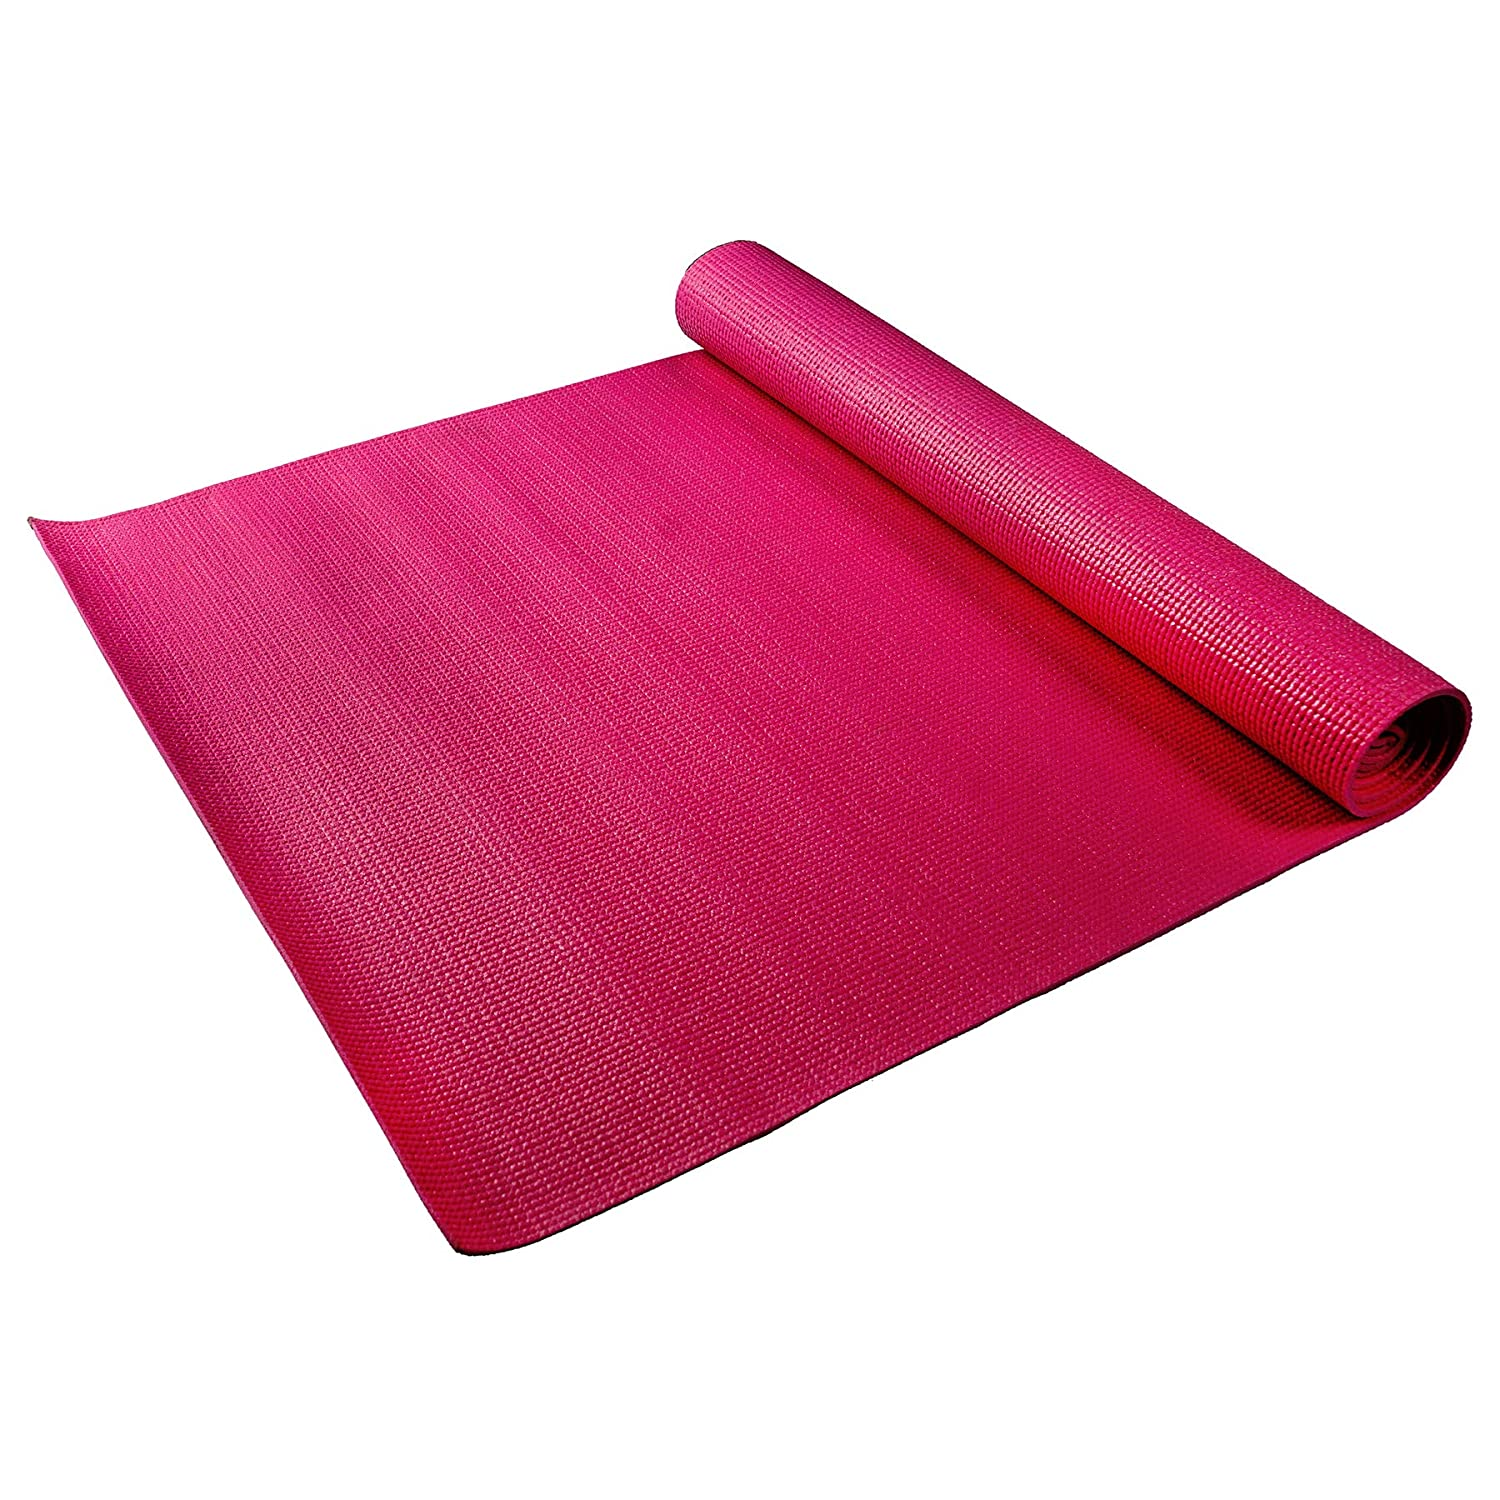 Yoga Mat - 6 mm